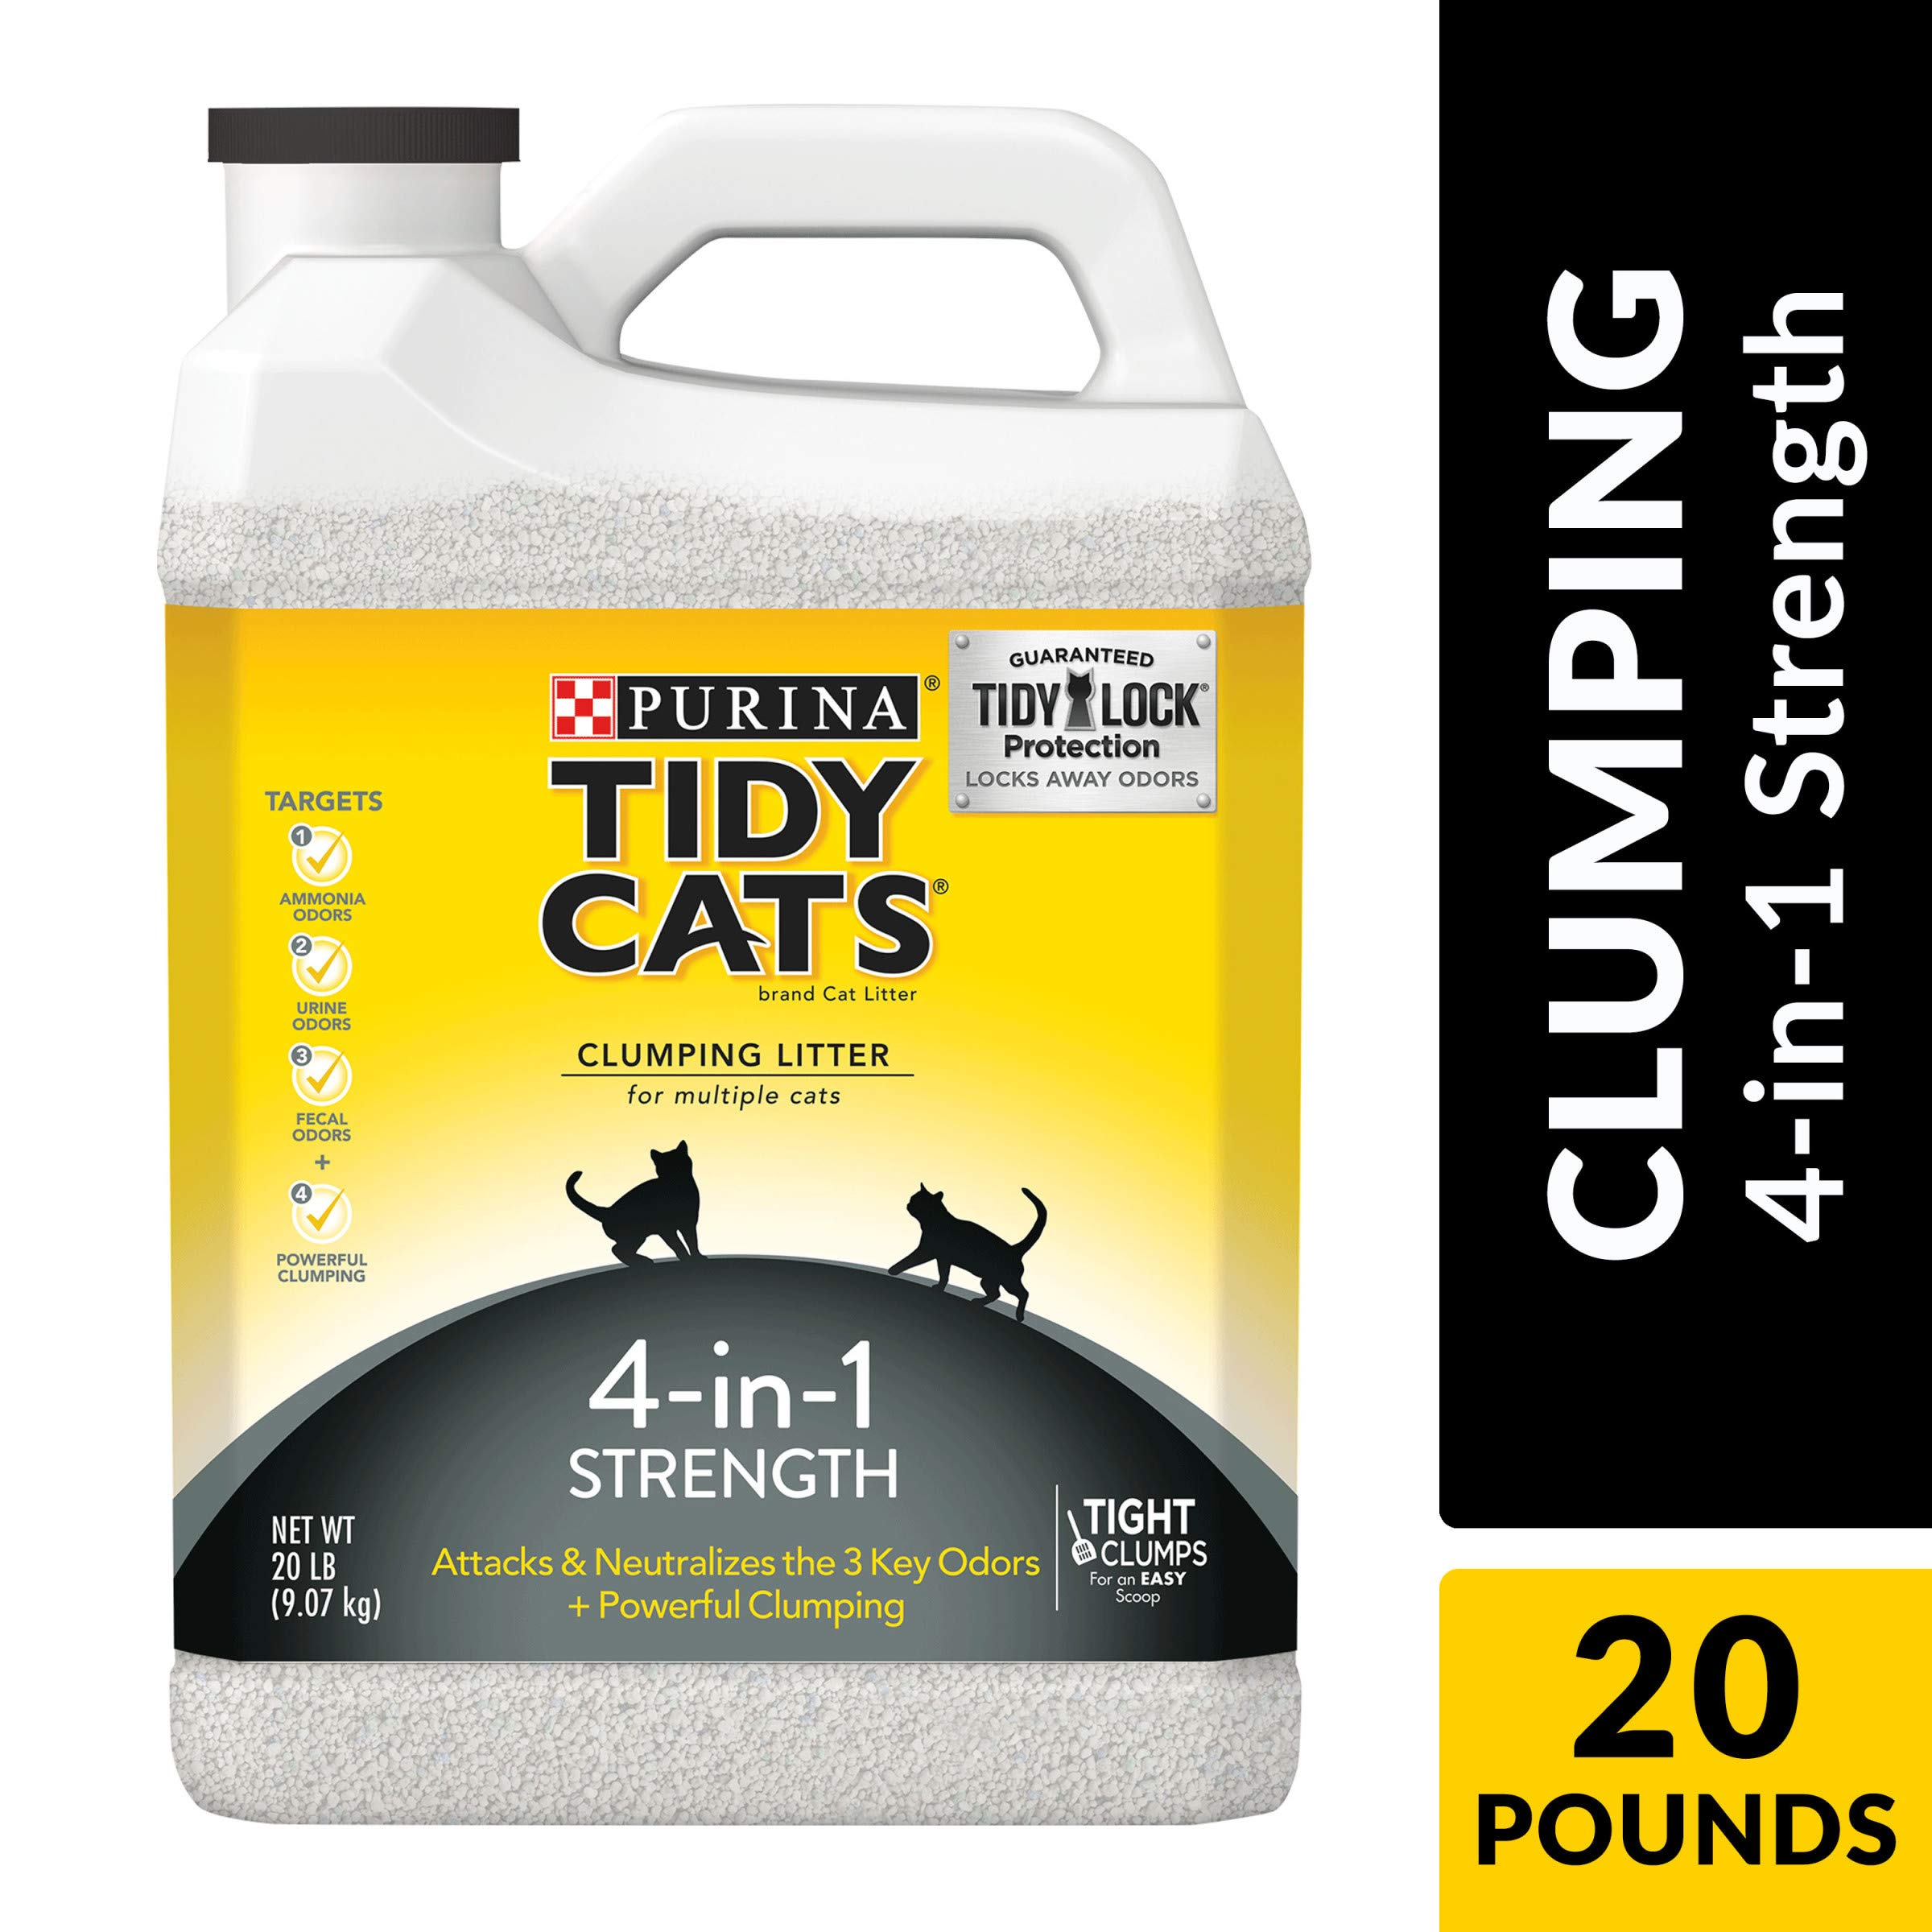 Purina Tidy Cats Clumping Cat Litter, 4-in-1 Strength Multi Cat Litter - (2) 20 lb. Jugs by Purina Tidy Cats